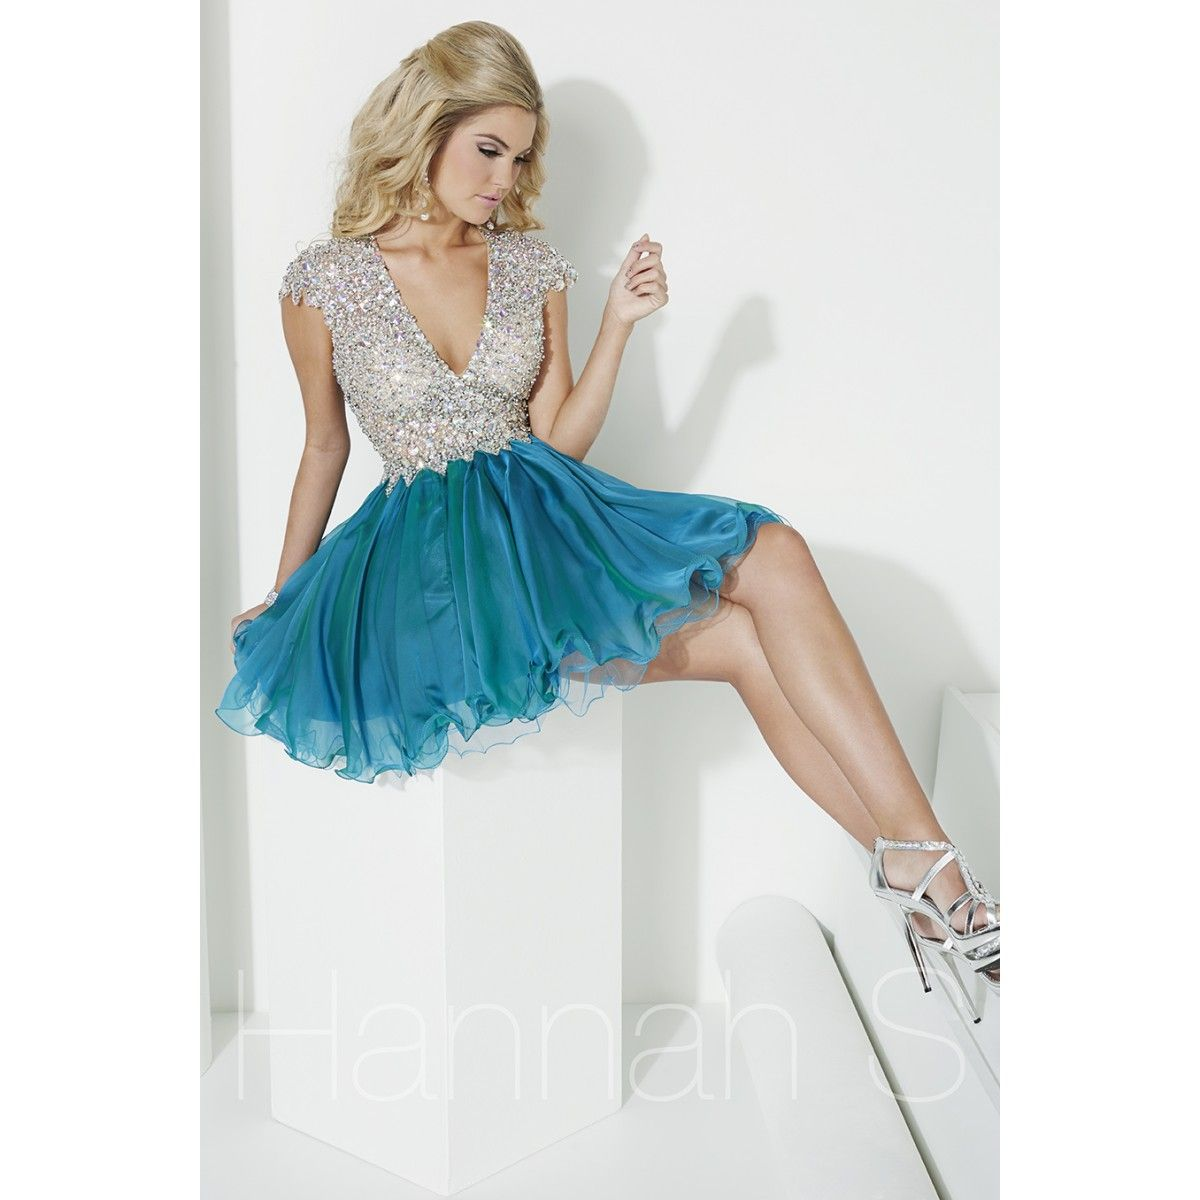 Hannah S Style 27969 a perfect party dress for any occasion. Fun and ...